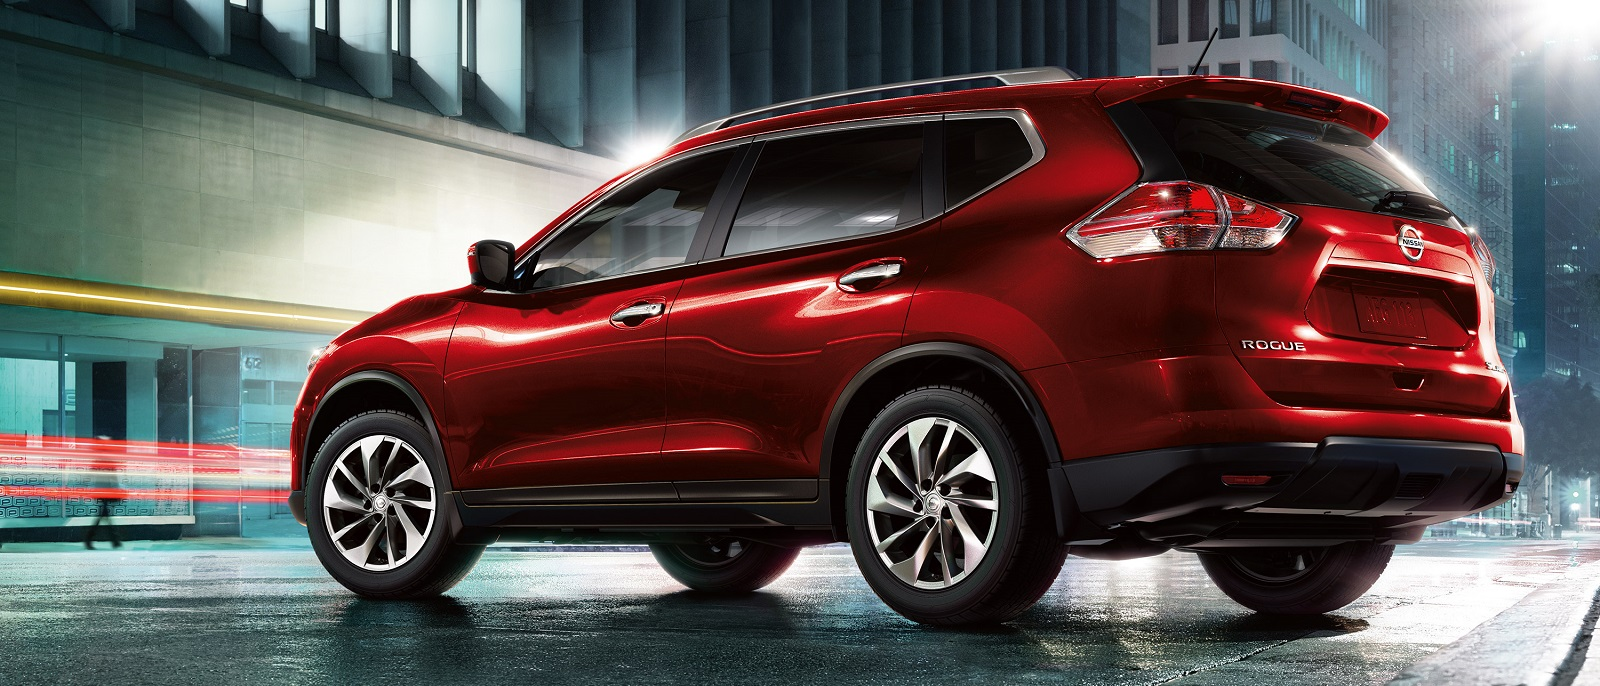 Nissan Dealership Indianapolis >> 2016 Nissan Rogue Zionsville Carmel | Andy Mohr Nissan